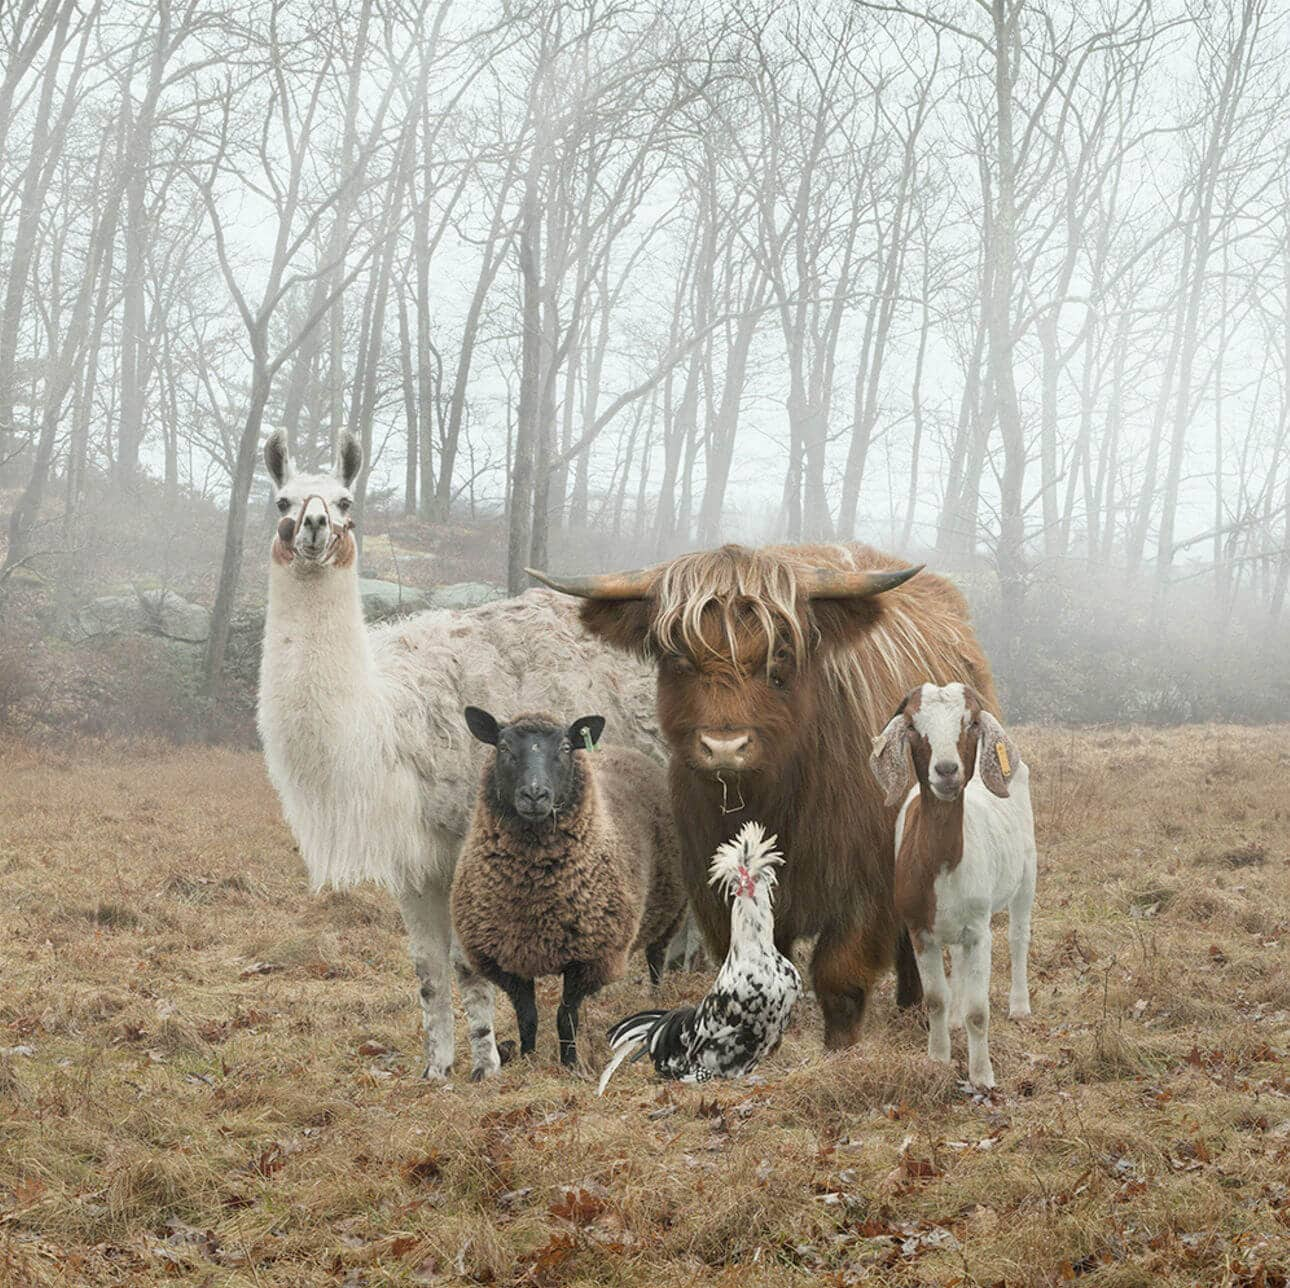 Rob MacInnis Takes Animal Farm Photographs Like You Haven't Seen Before -